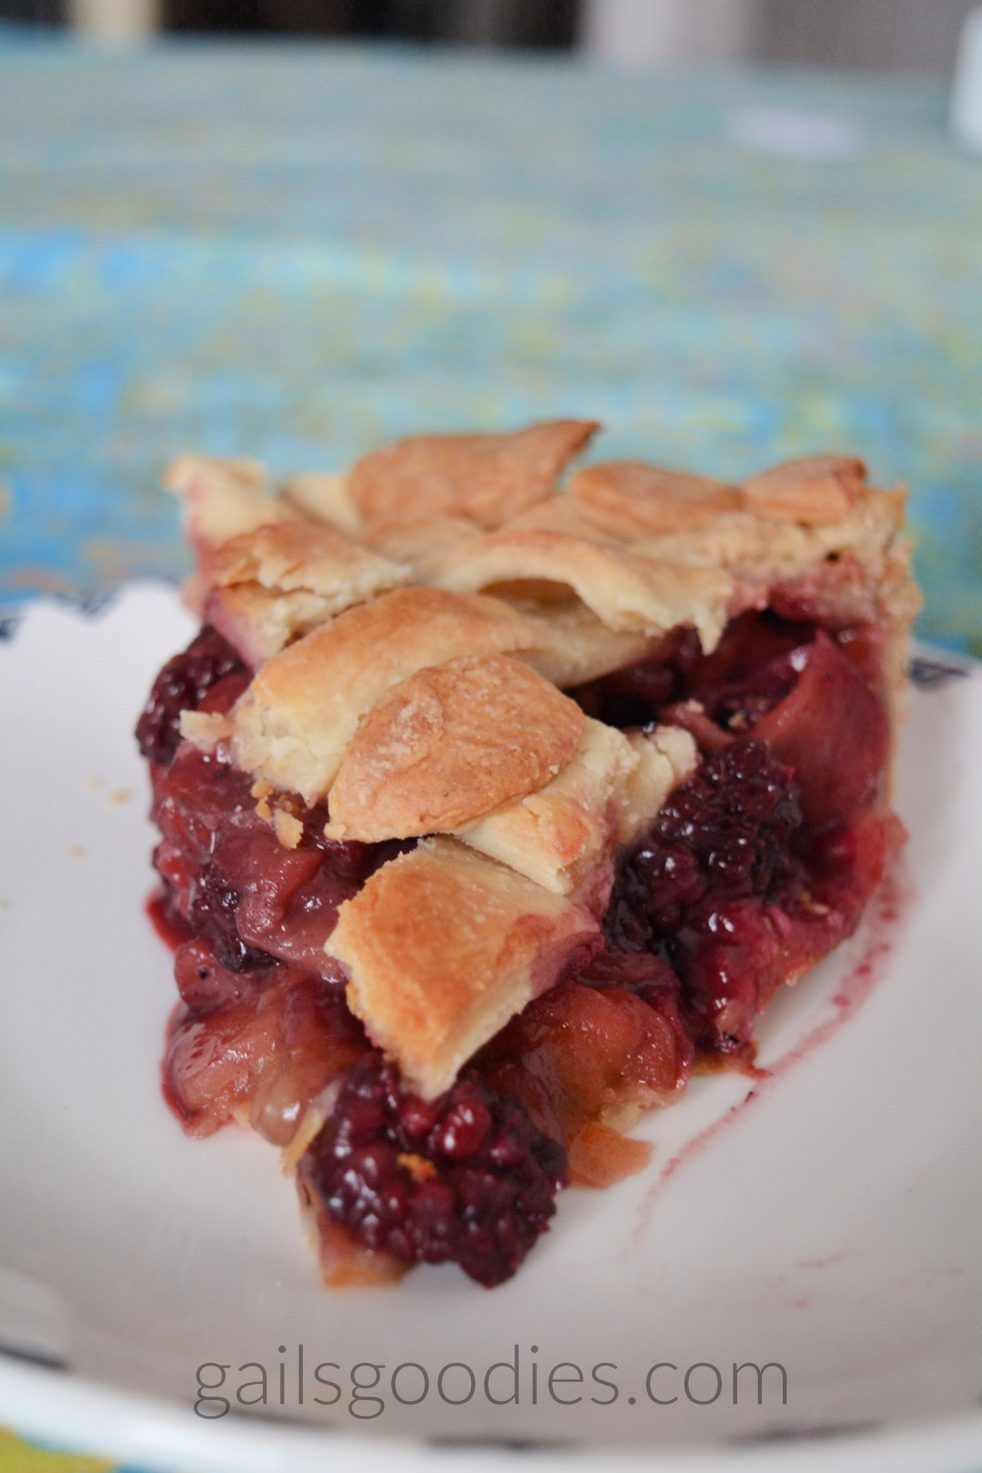 A slice of blackberry apple pie pointed towards the front of the photo. There is a blackberry at the point of the slice and bits of apple and blackberry line both sides. The pie is topped with a golden lattice top.